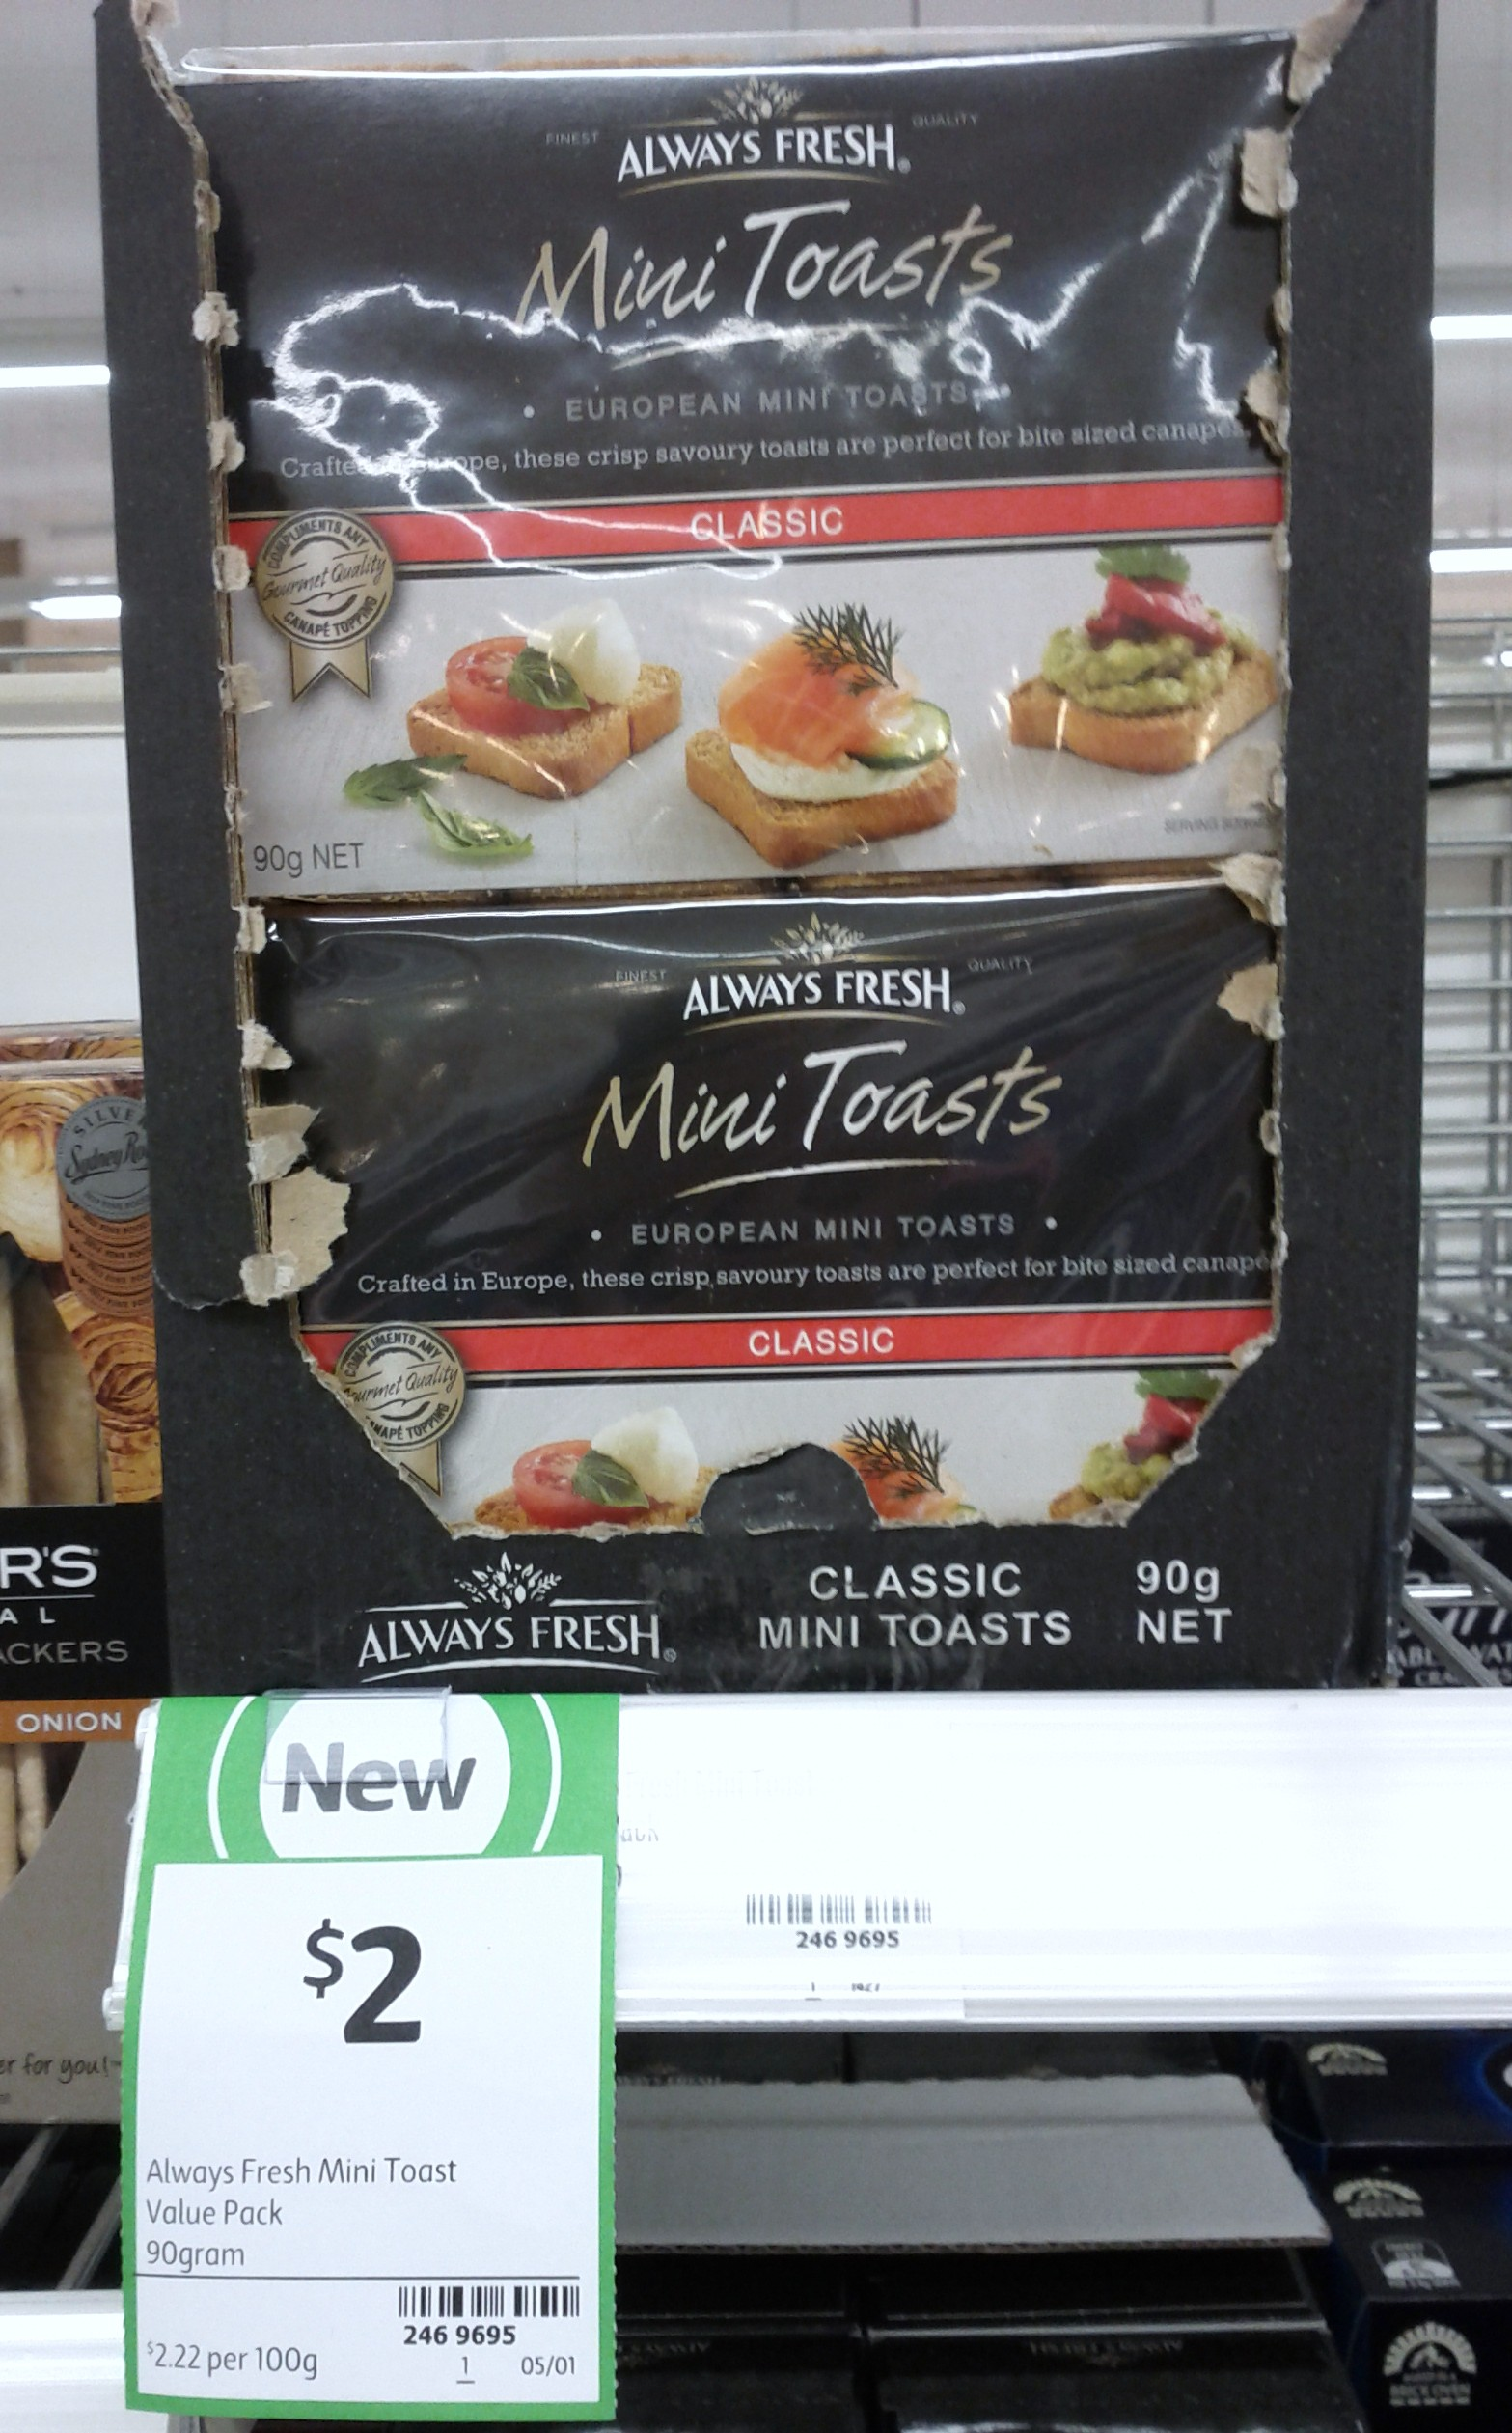 Always Fresh 90g Mini Toasts Classic